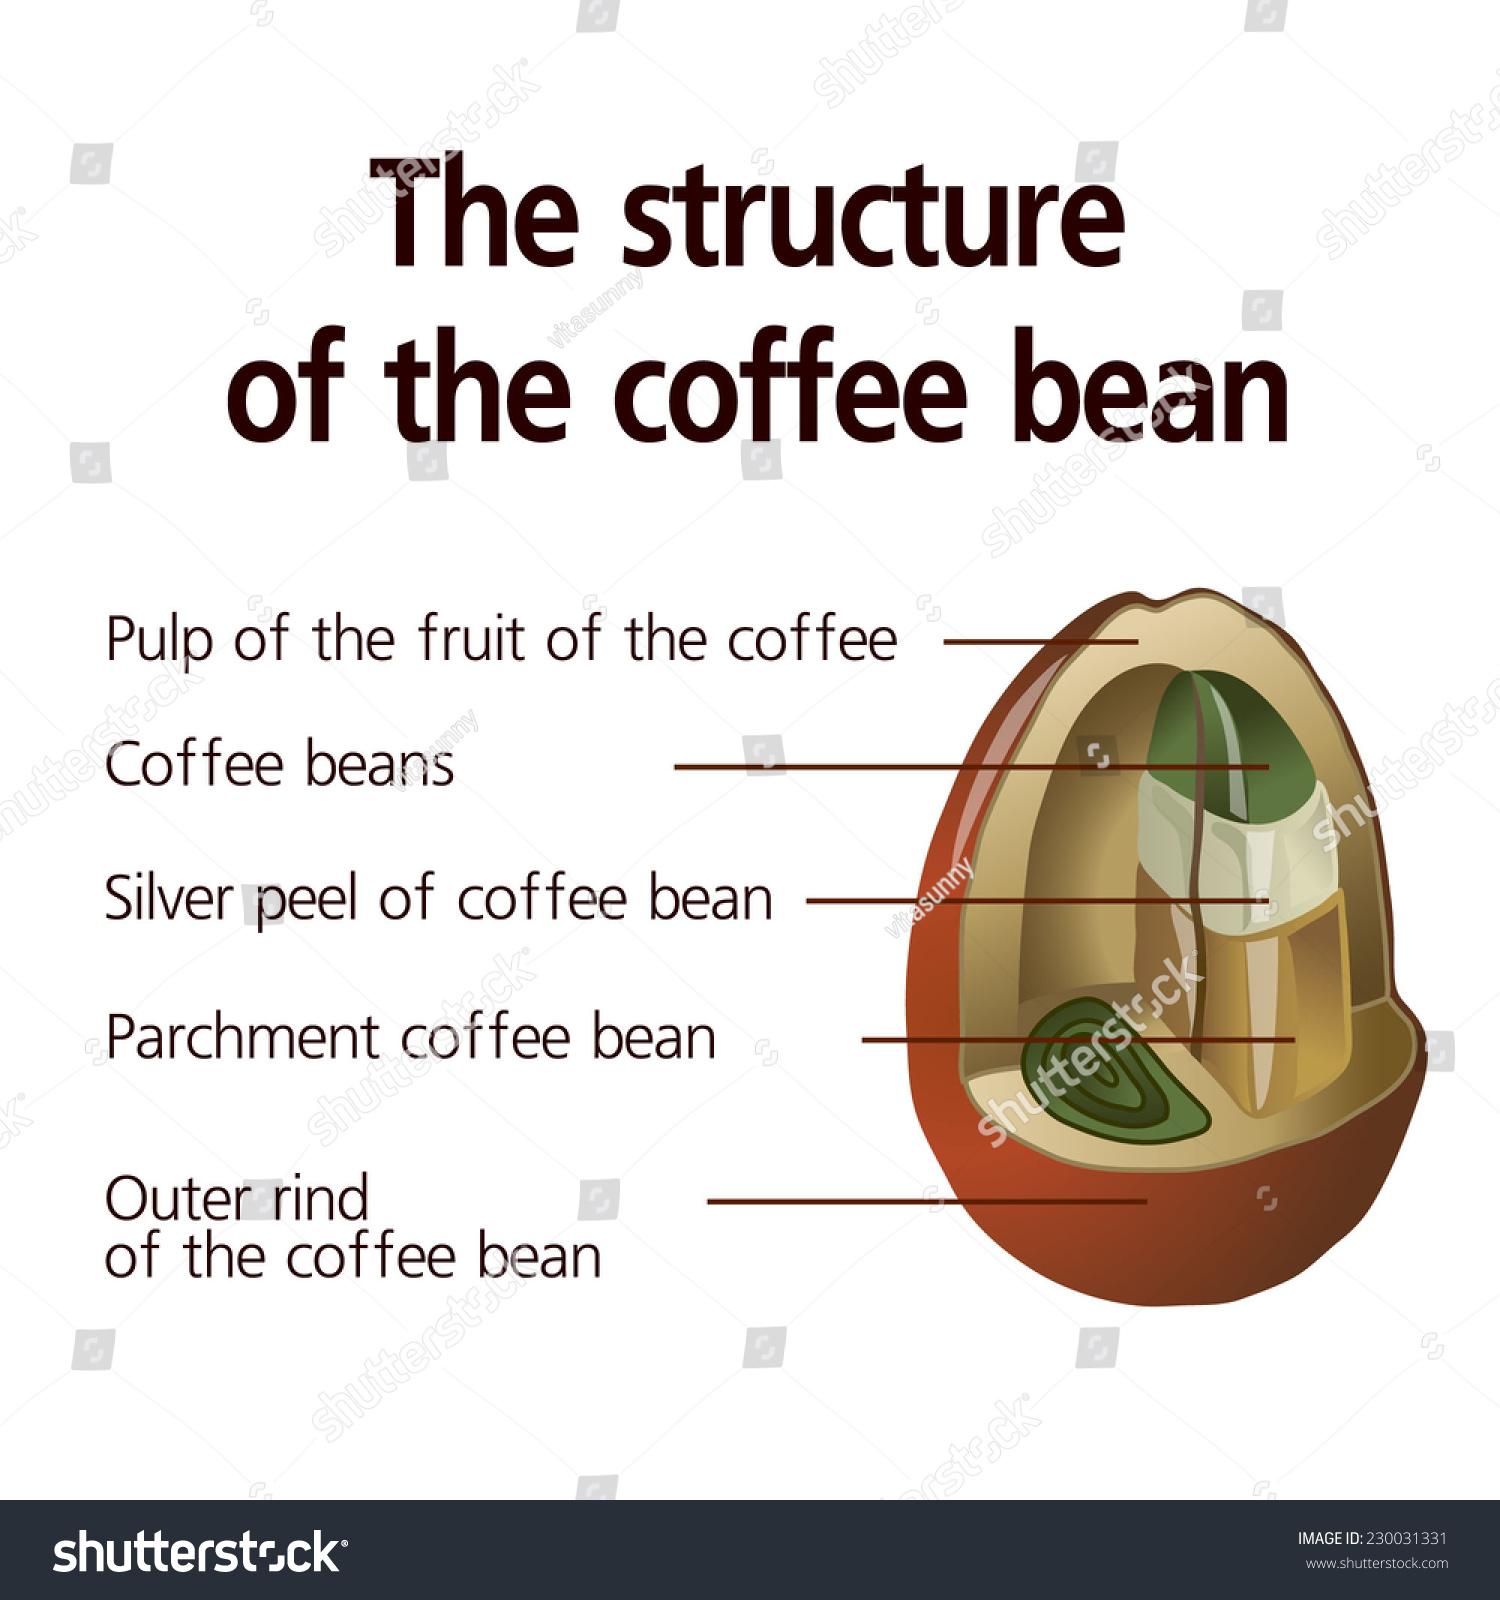 green bean structure diagram pictures to pin on pinterest Bean Plant Cartoon Beans